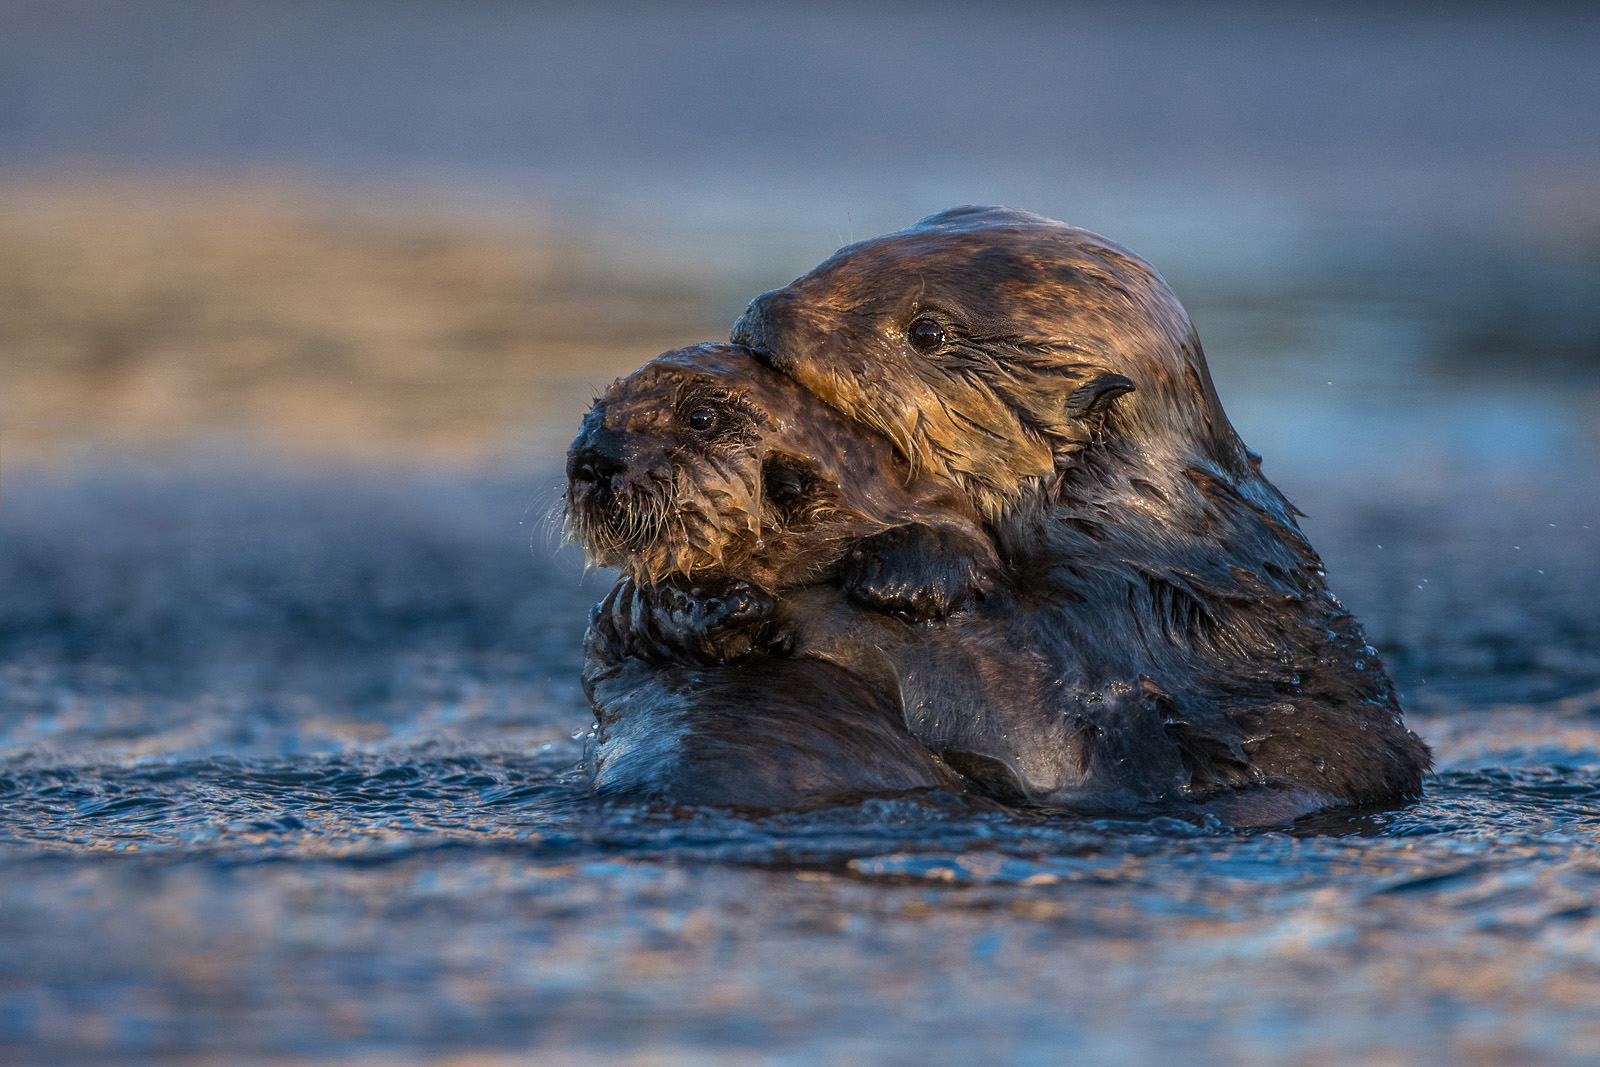 Sea Otter Mother with Pup, Morro Bay, California